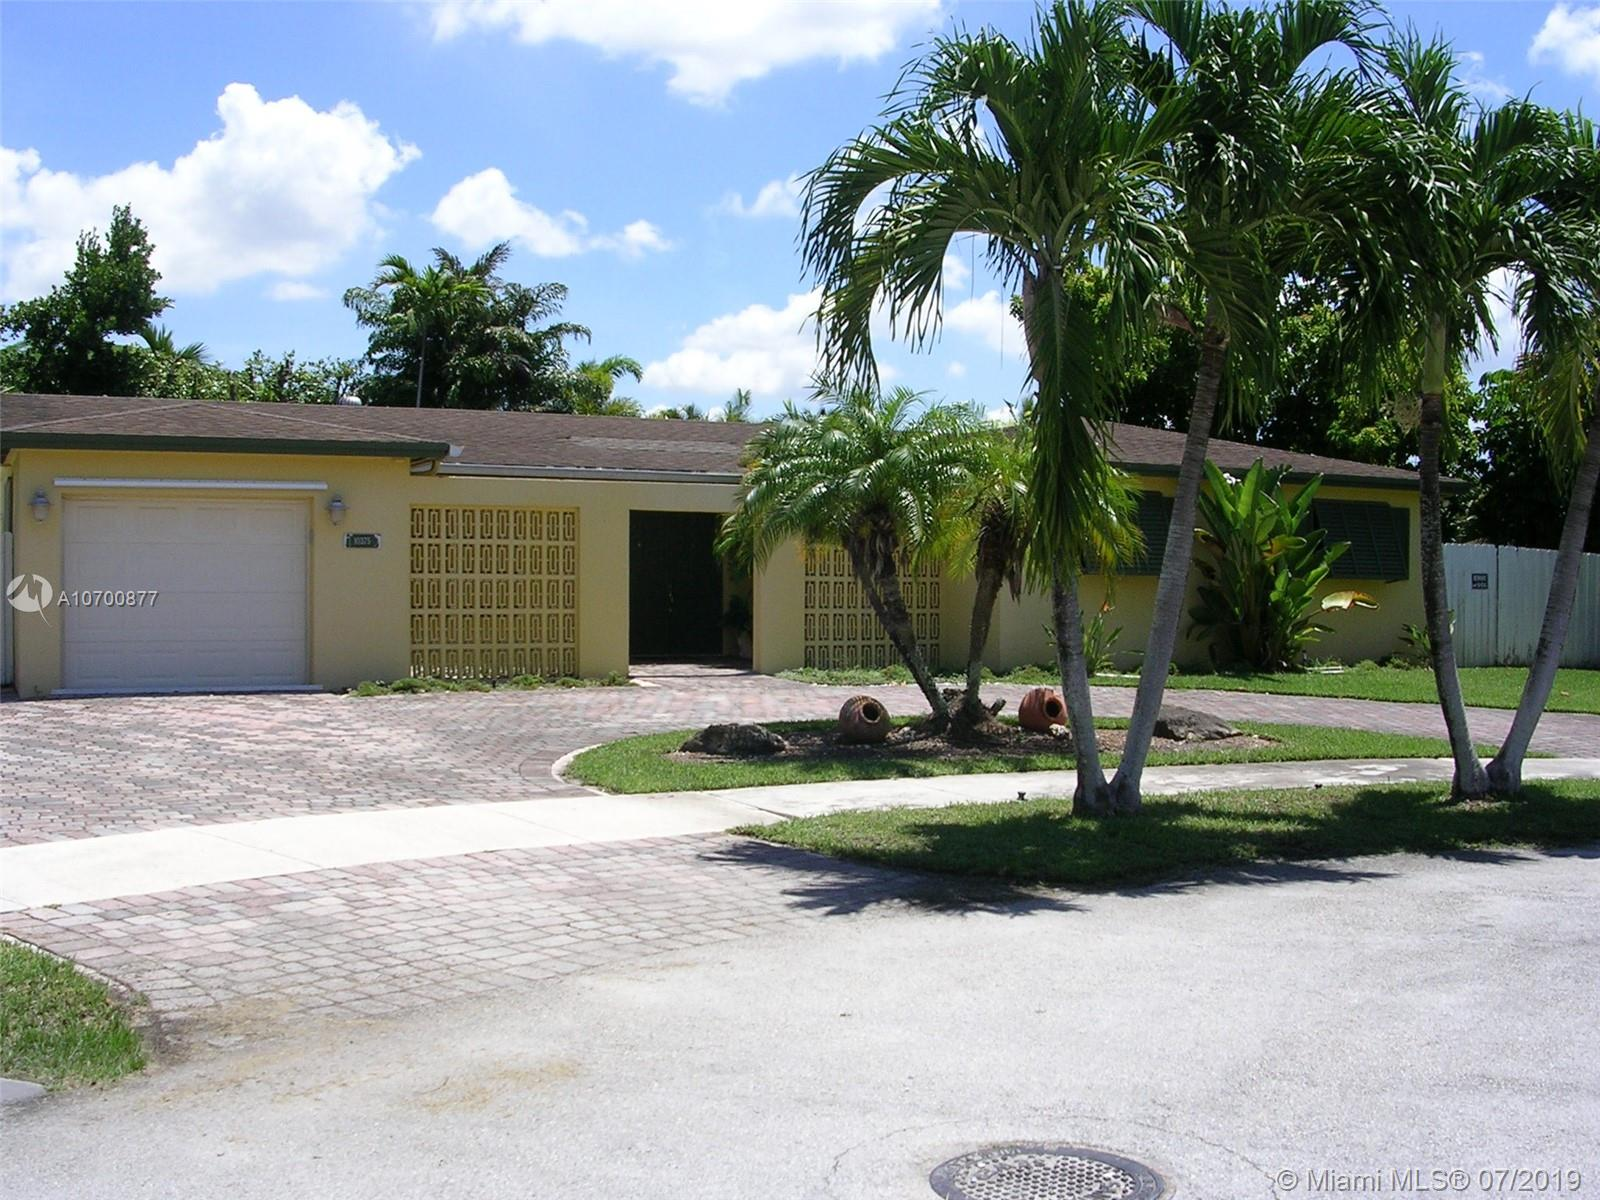 10375 SW 97th Ter, Kendall in Miami-dade County County, FL 33176 Home for Sale